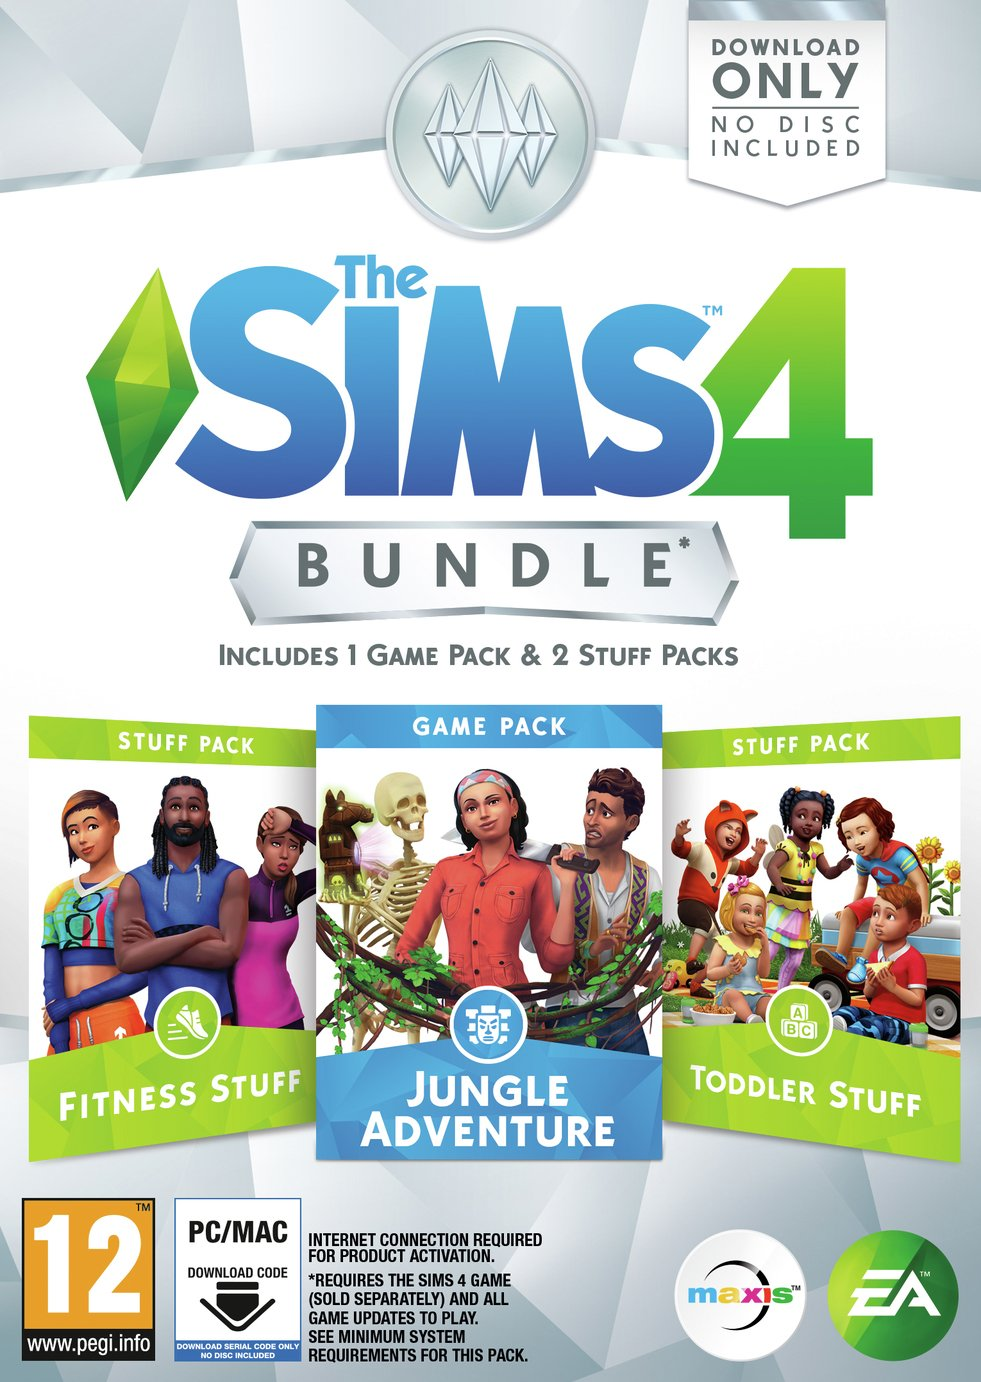 The Sims 4 Jungle Adventure Bundle Pack for PC